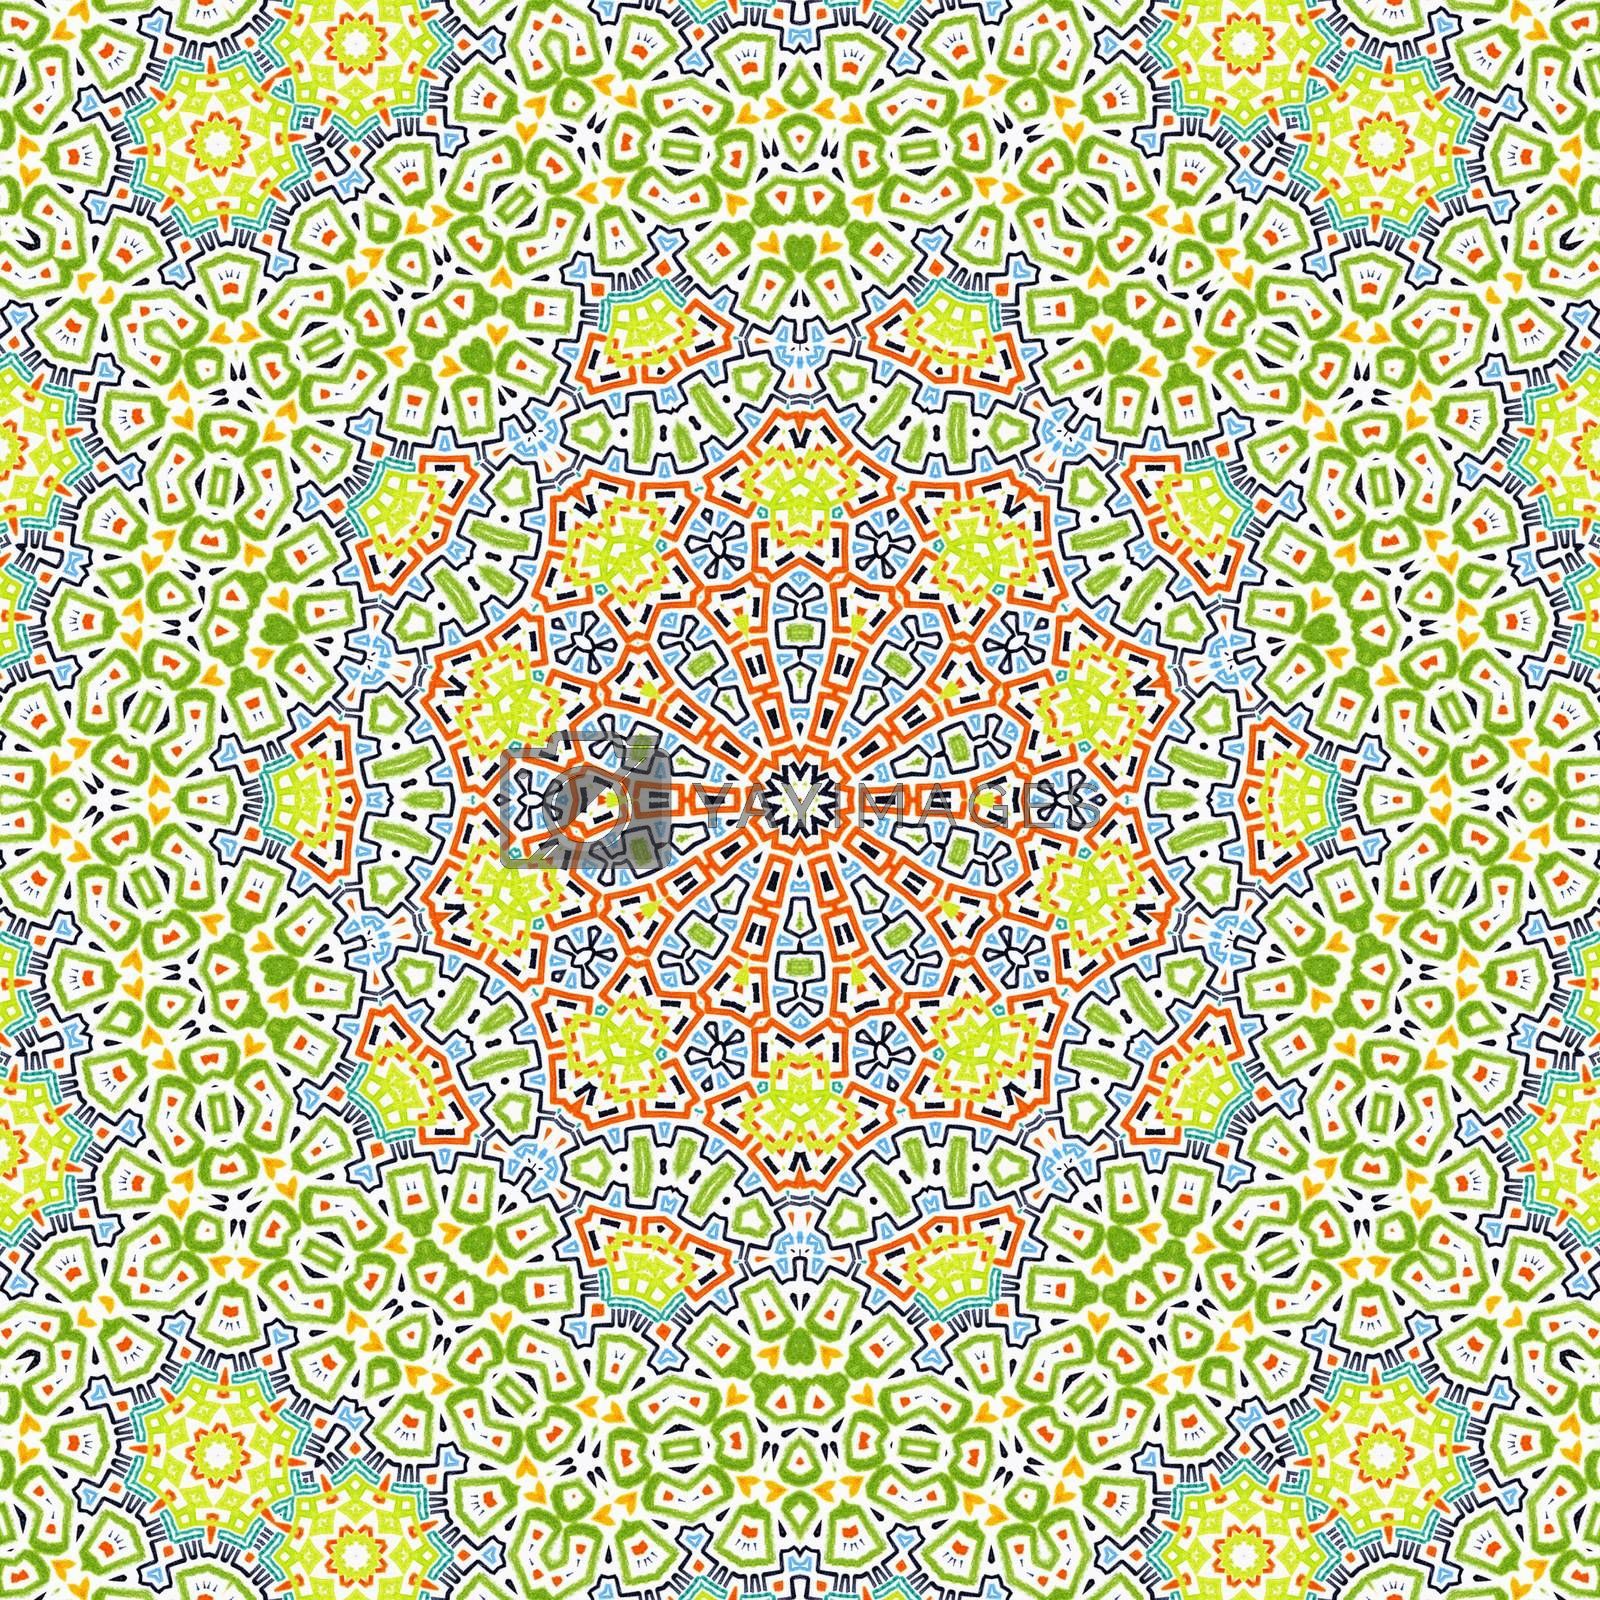 Bright colorful background with abstract concentric pattern